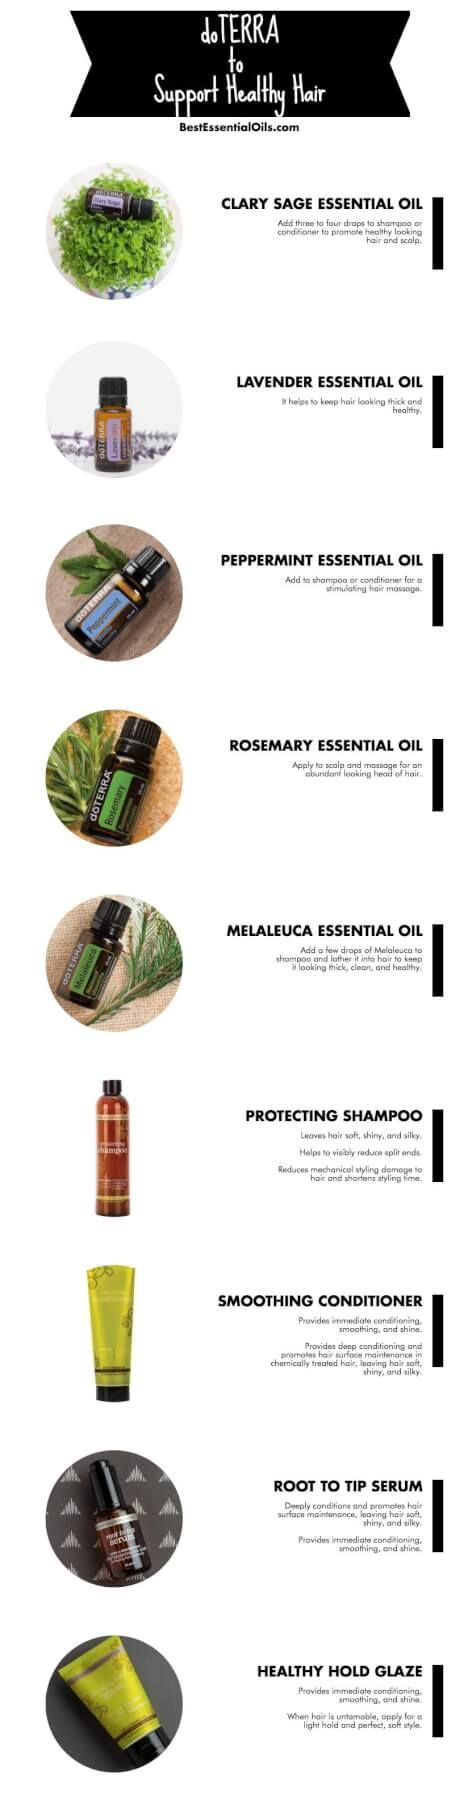 doTERRA Products to Support Healthy Hair - clary sage, lavender, peppermint, rosemary, melaleuca, shampoo, conditioner, Root to Tip serum and Healthy Hold Glaze.